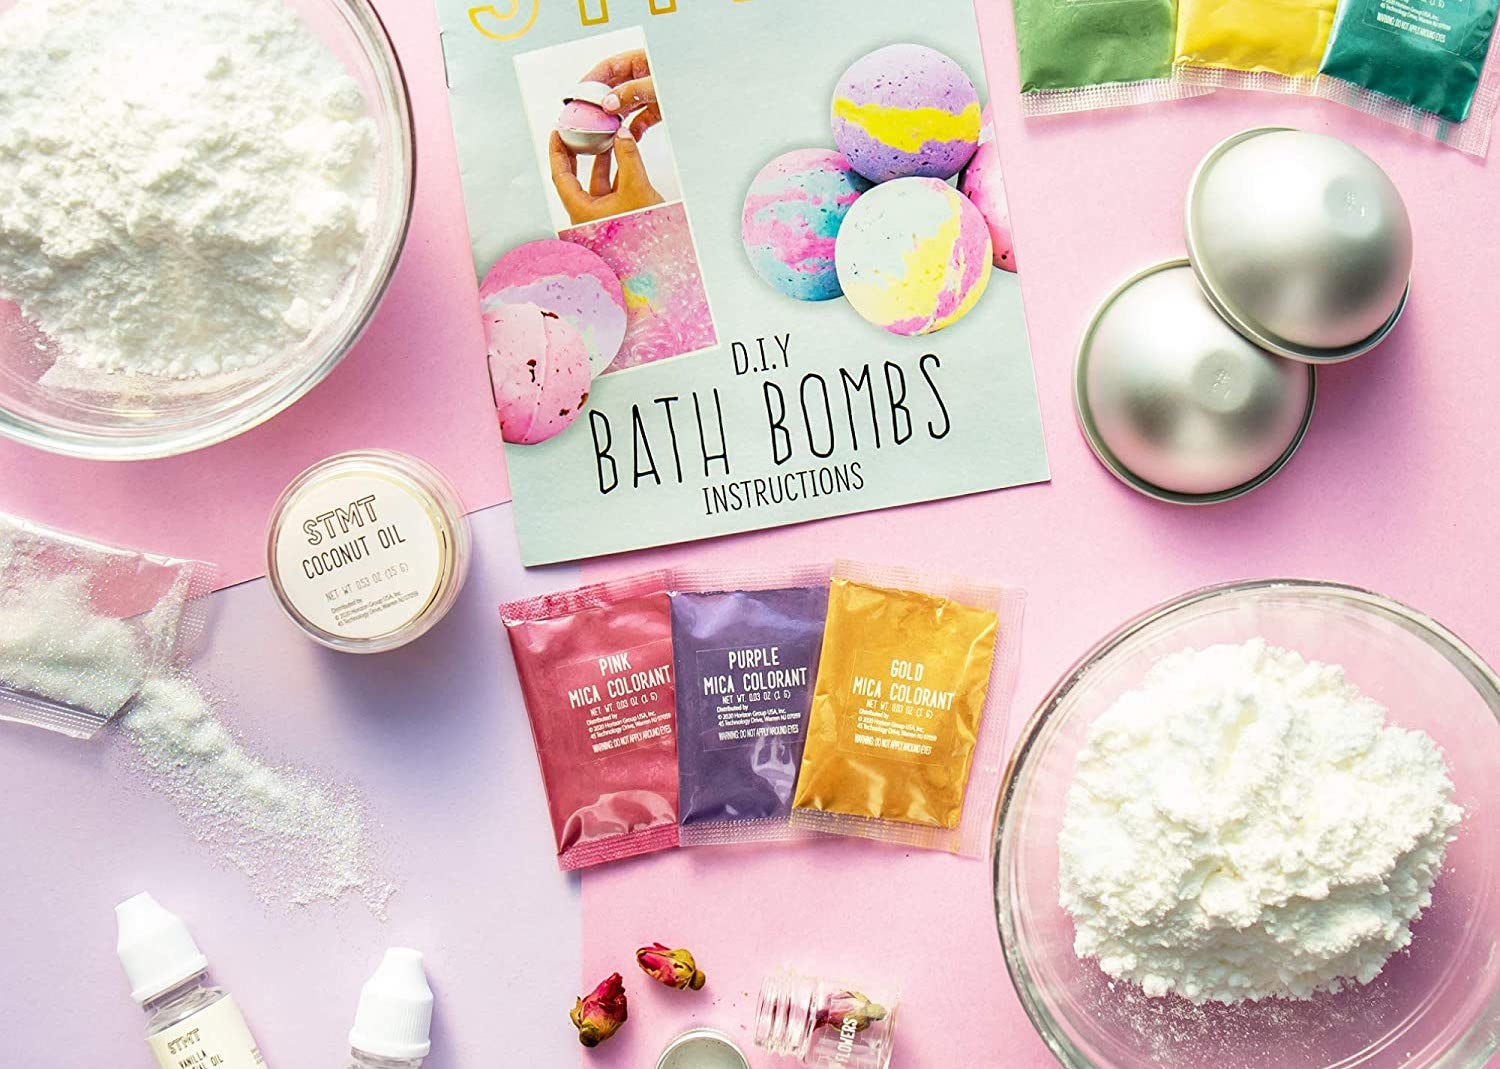 Materials for bath bombs (vials of oil, different powders, etc.) on a colorful surface